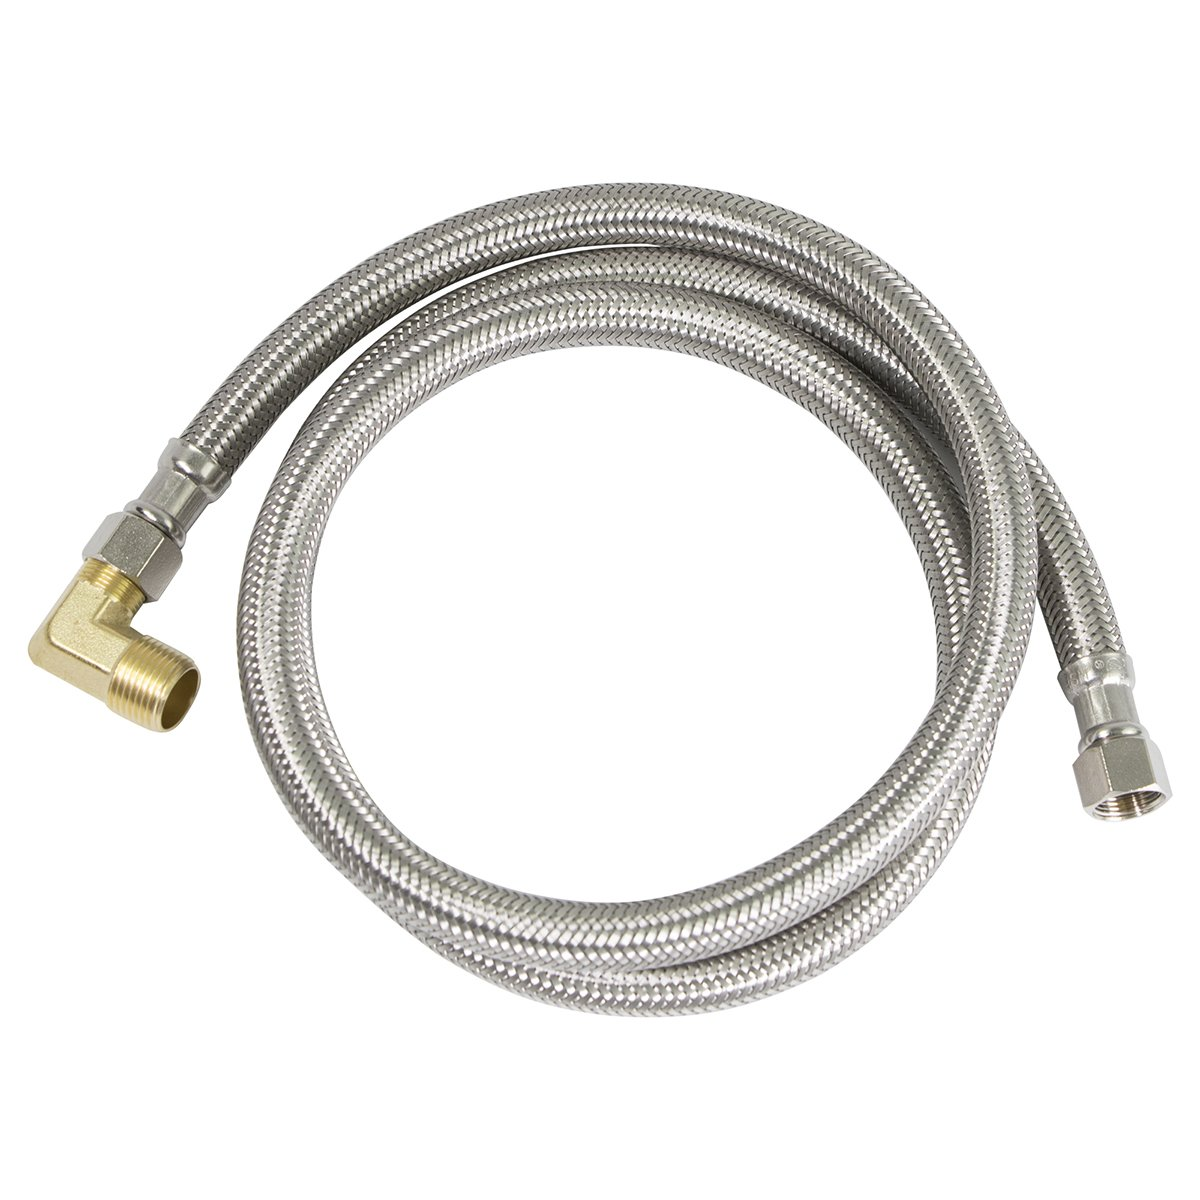 Everflow Supplies 27784PR-NL Premium Lead Free Braided Stainless Steel Premium Dishwasher Connector Hose with PVC Inner Tube, 3/8'' Compression Connections and Brass Elbow, 84''